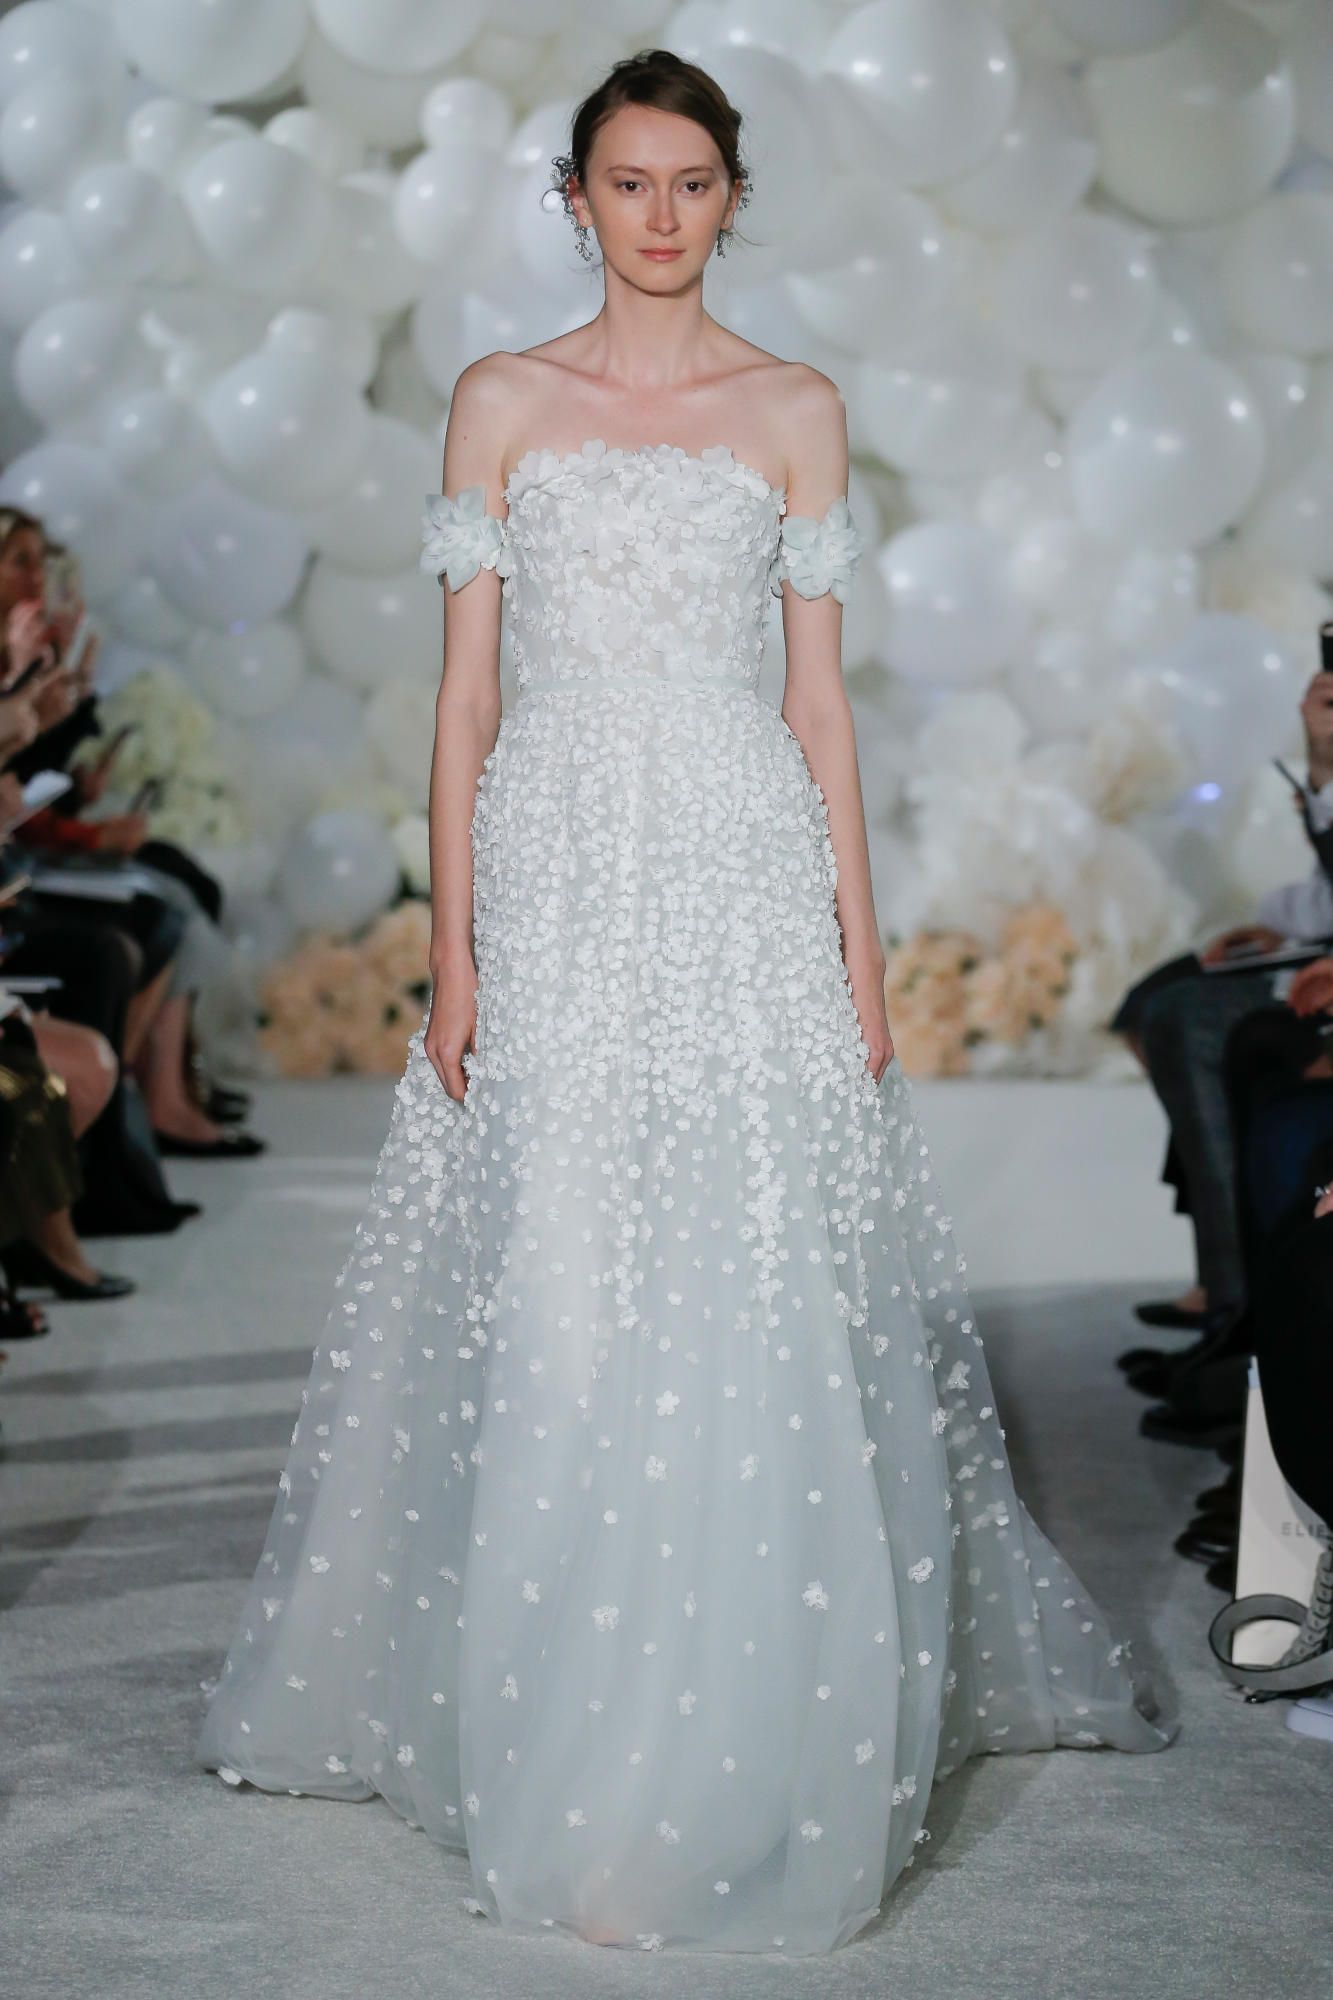 The 11 Best Bridal Trends for Spring 2018 Are Surprisingly Timeless